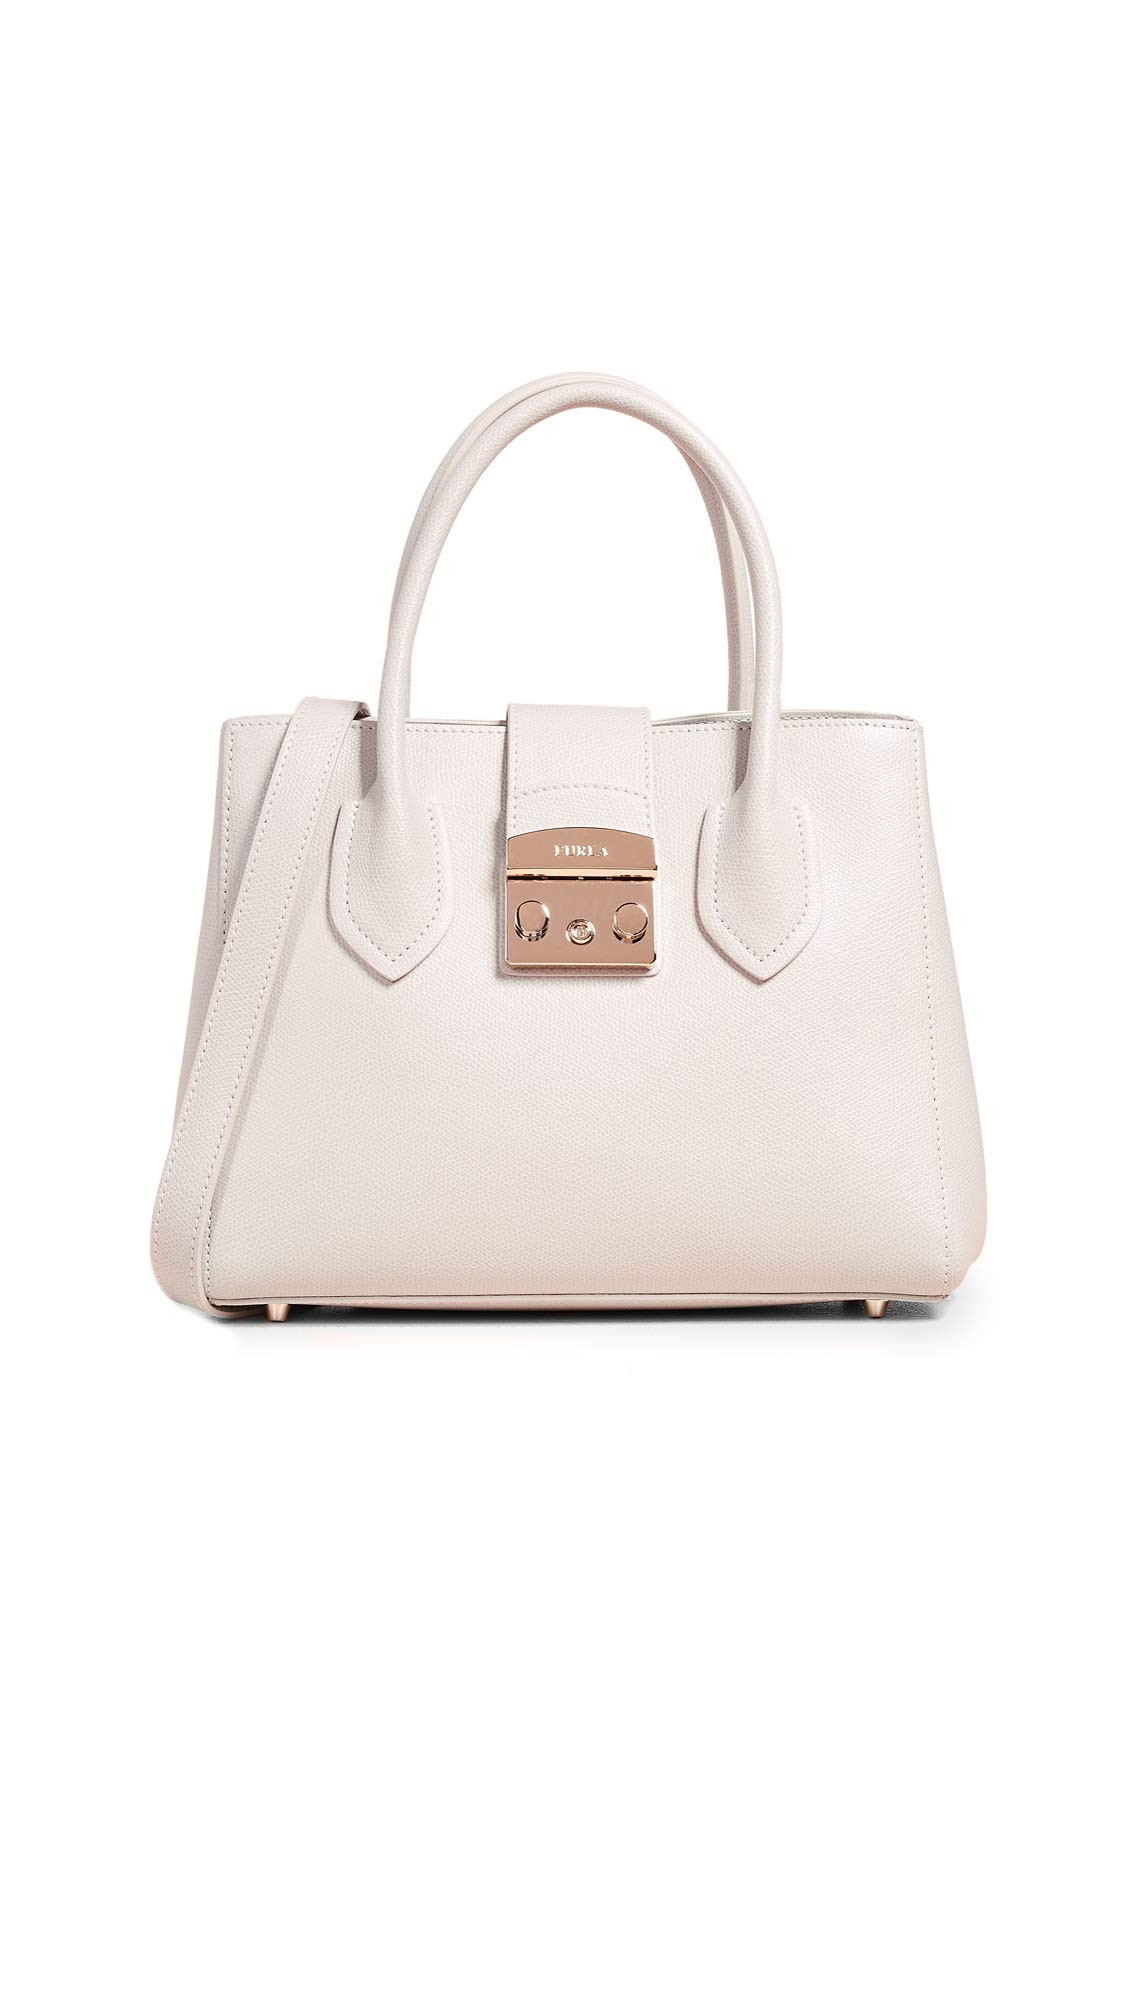 Furla Women's Metropolis Small Tote, Perla, Off White, One Size